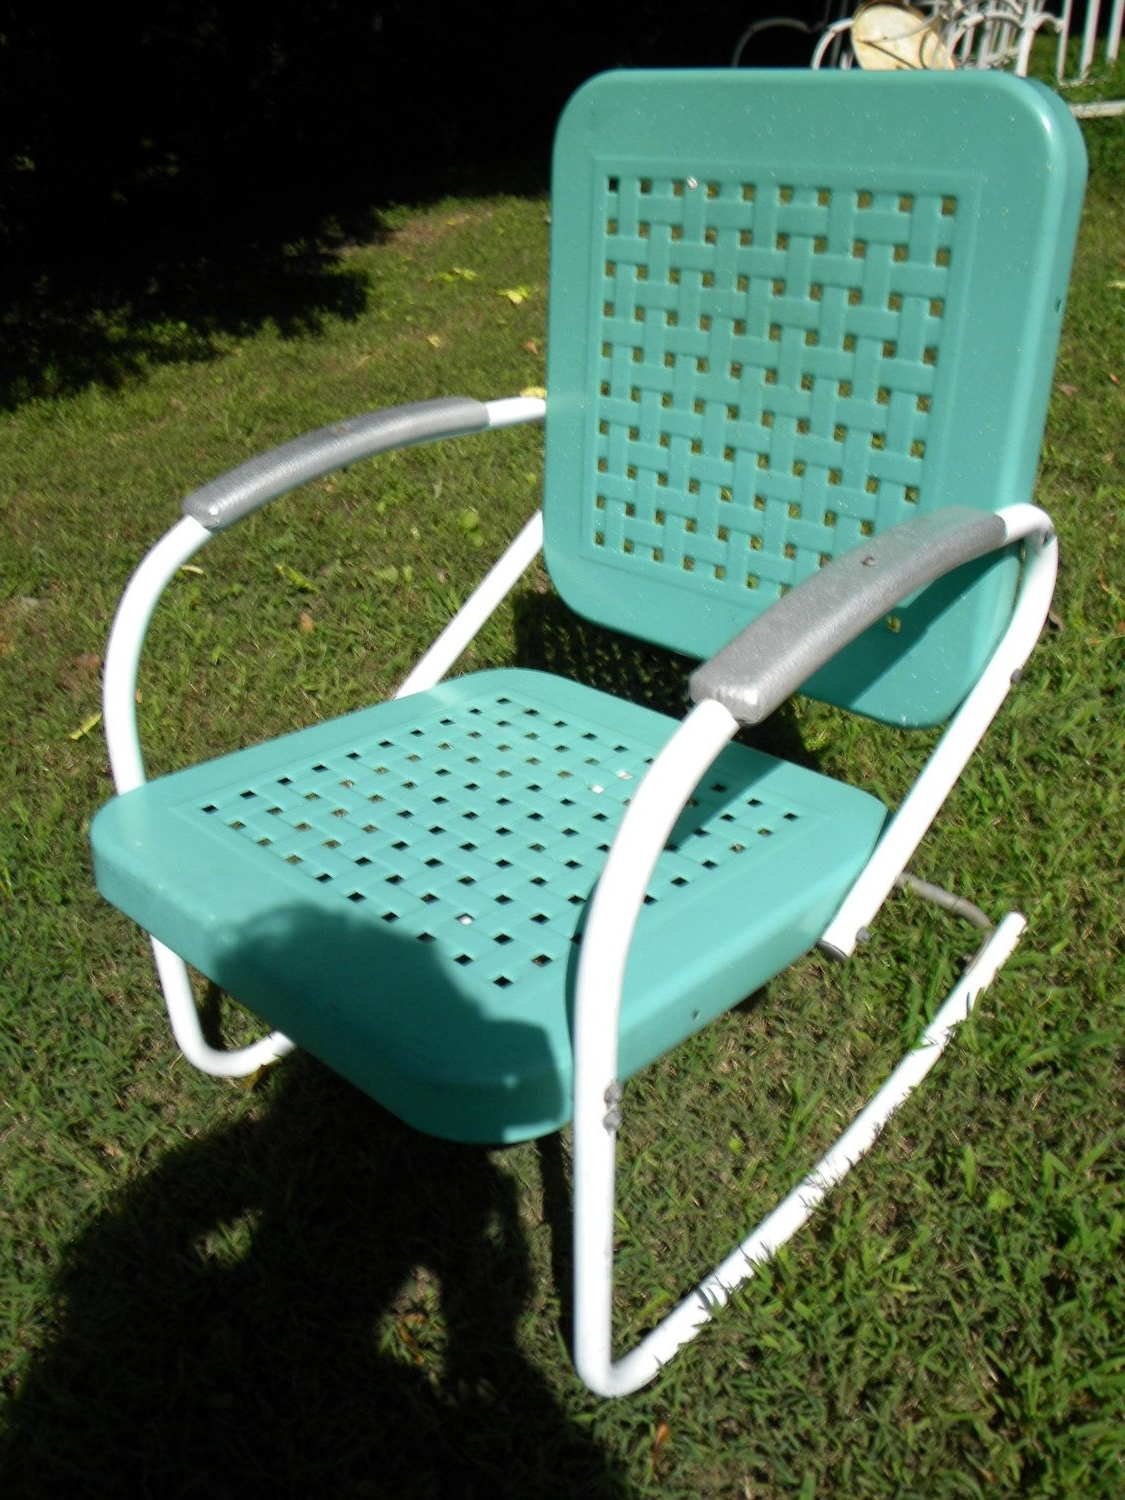 2019 Vtg 50S 60S Retro Outdoor Metal Lawn Patio Porch Rocking Chair Within Vintage Metal Rocking Patio Chairs (View 1 of 20)